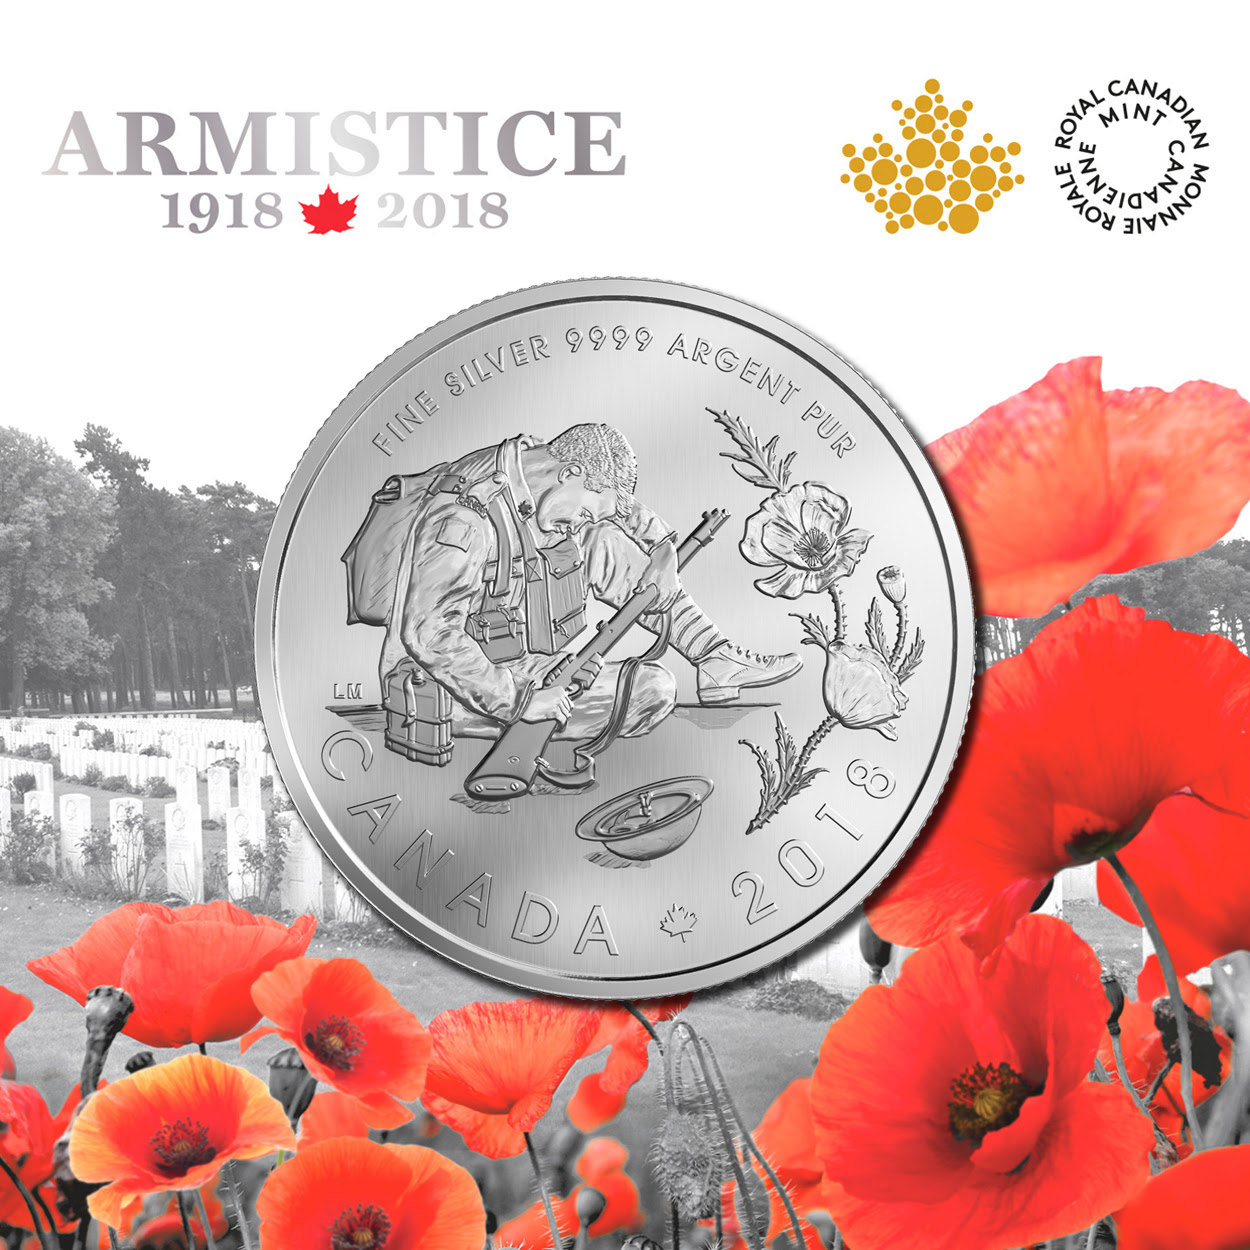 Image of the Armistice 1918-2018 coin.